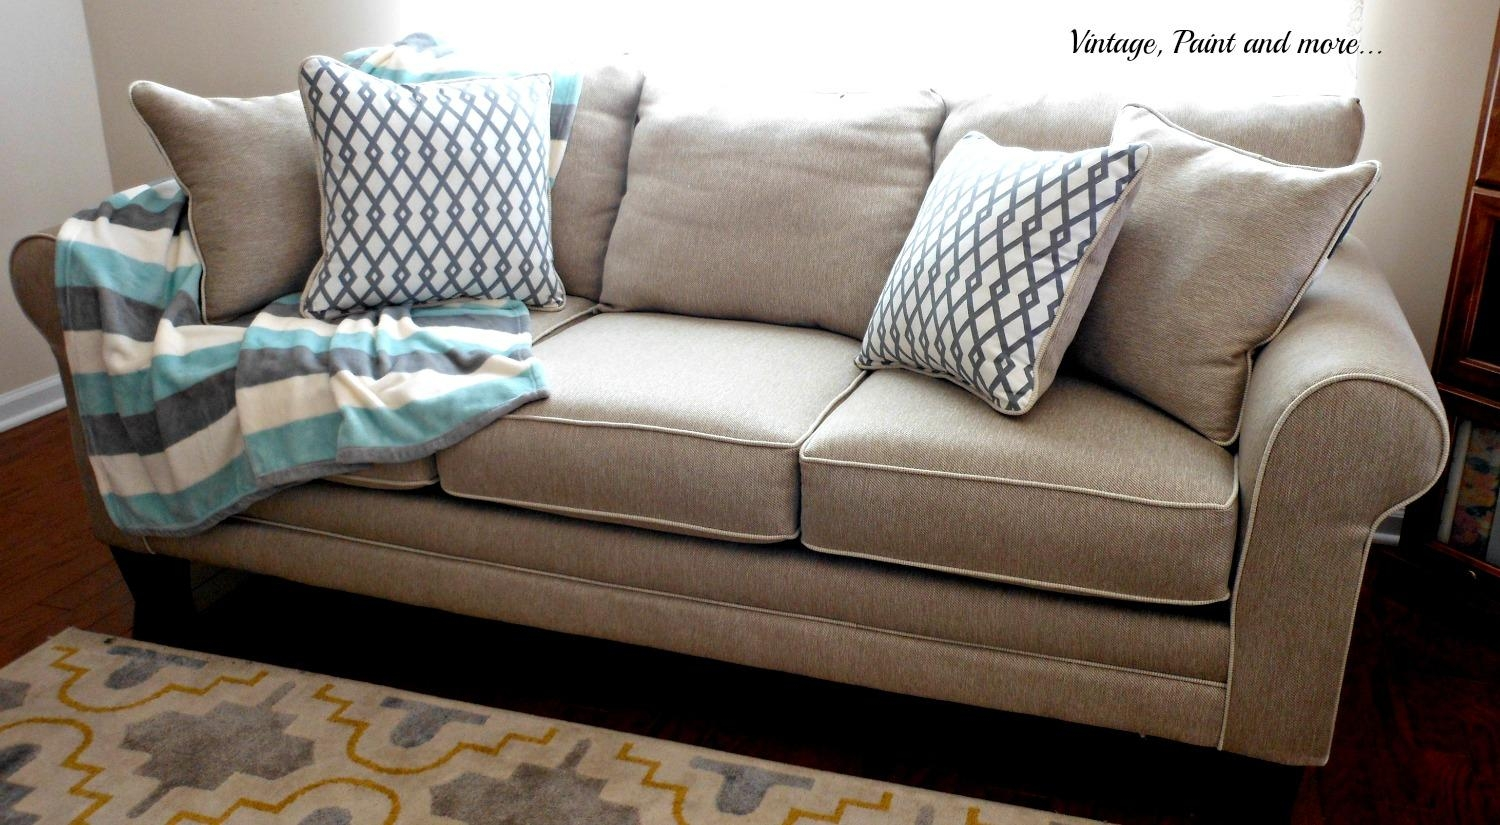 A New Sofa | Vintage, Paint And More Inside Sofa Accessories (Image 1 of 20)